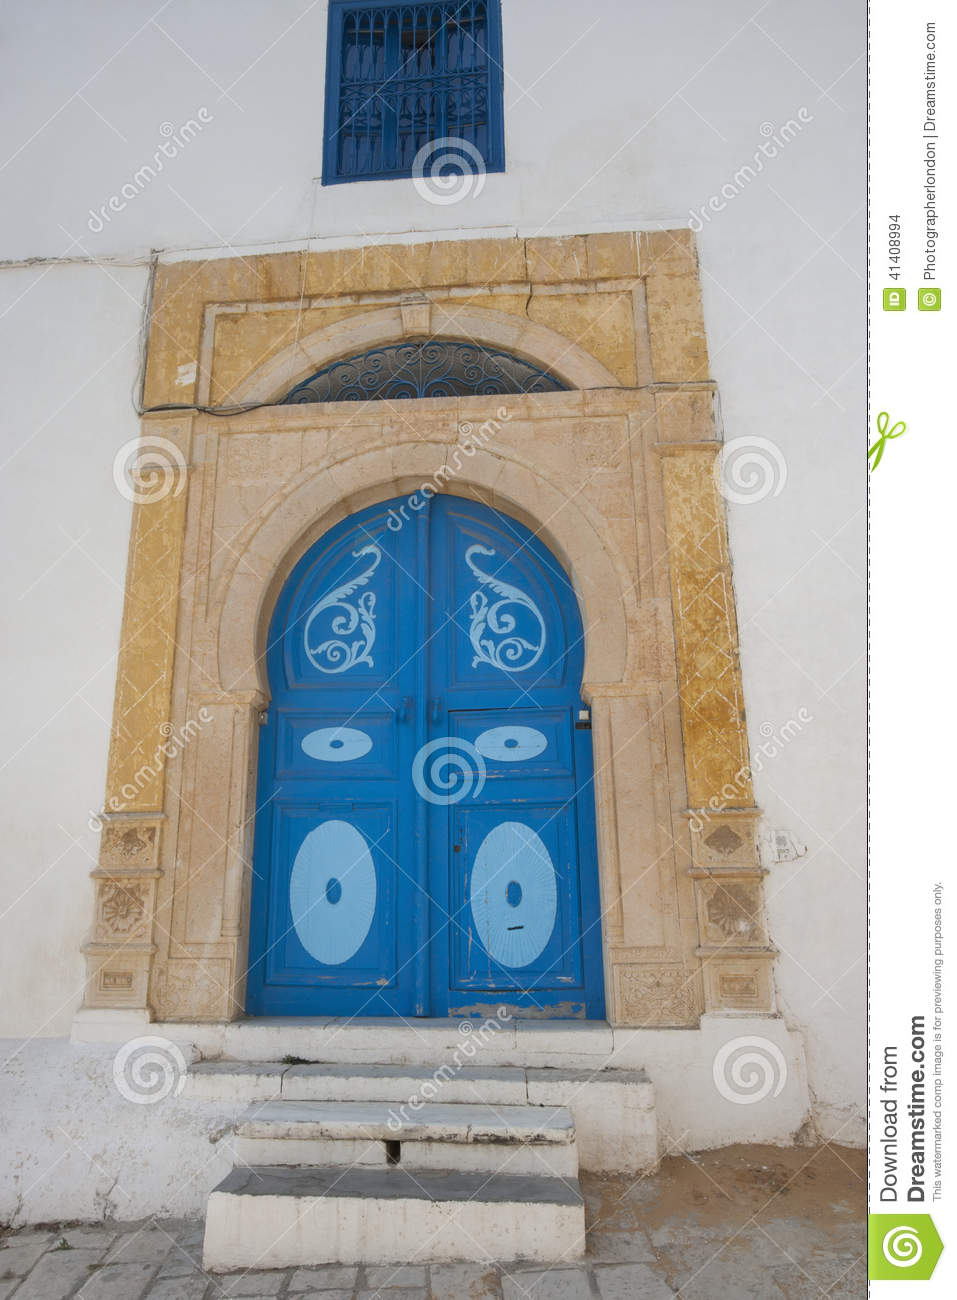 Typical local door of traditional home, Tunis, Tunisia